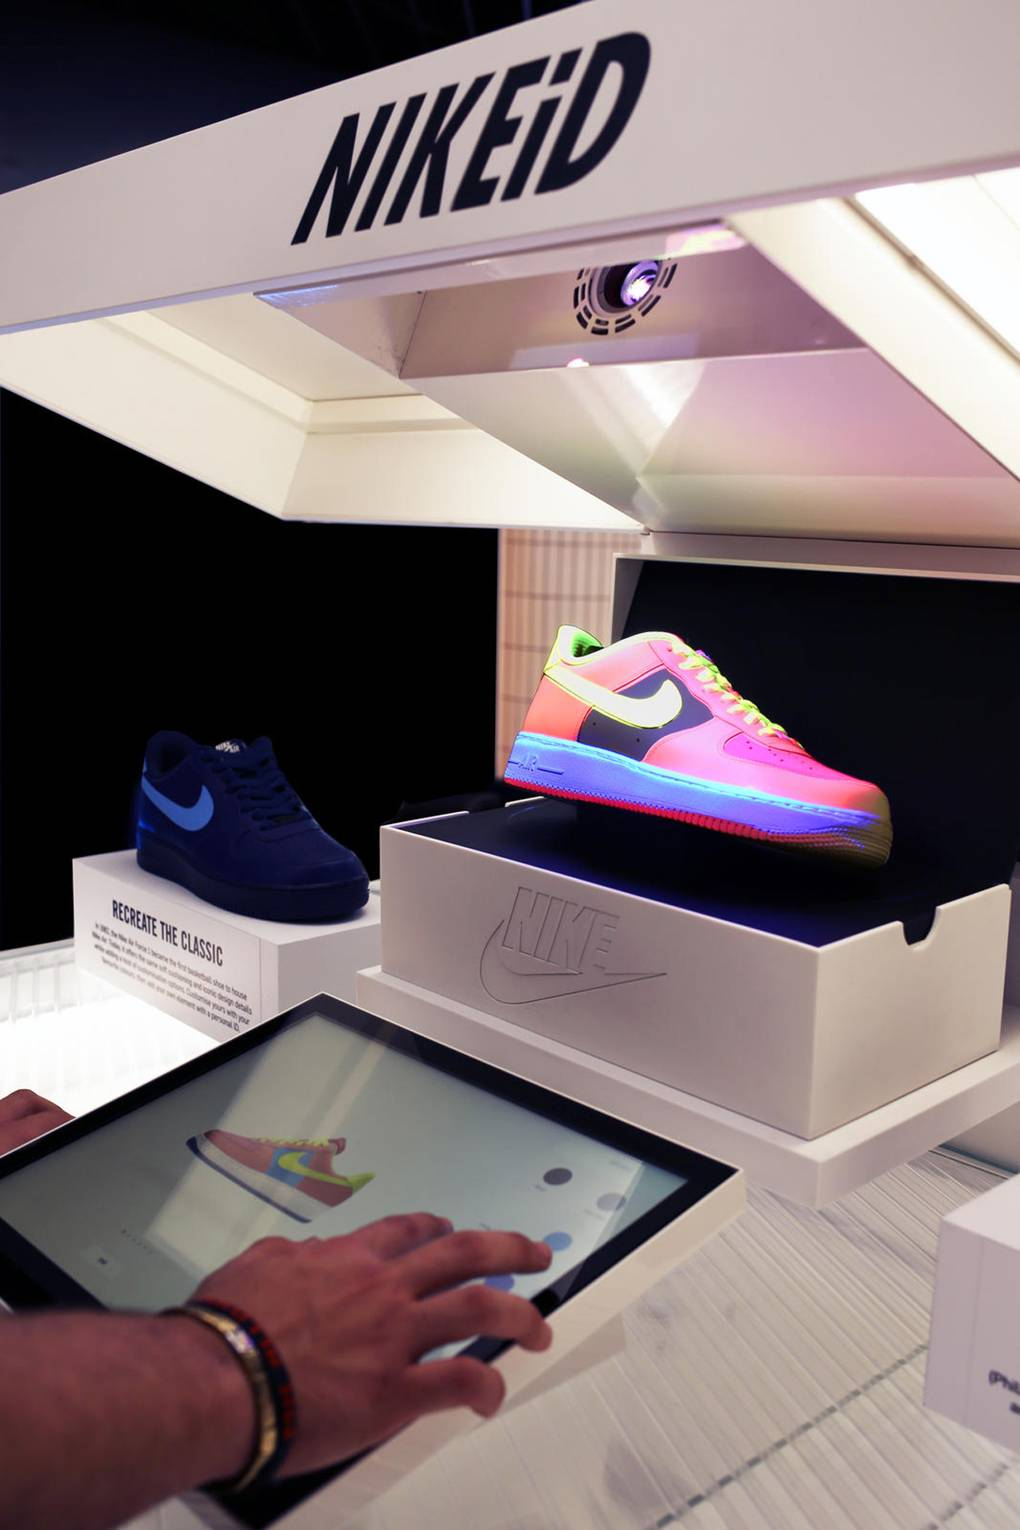 info for 4ca53 bb419 The new Nike iD Direct Studio is the future of customised kicks   British GQ